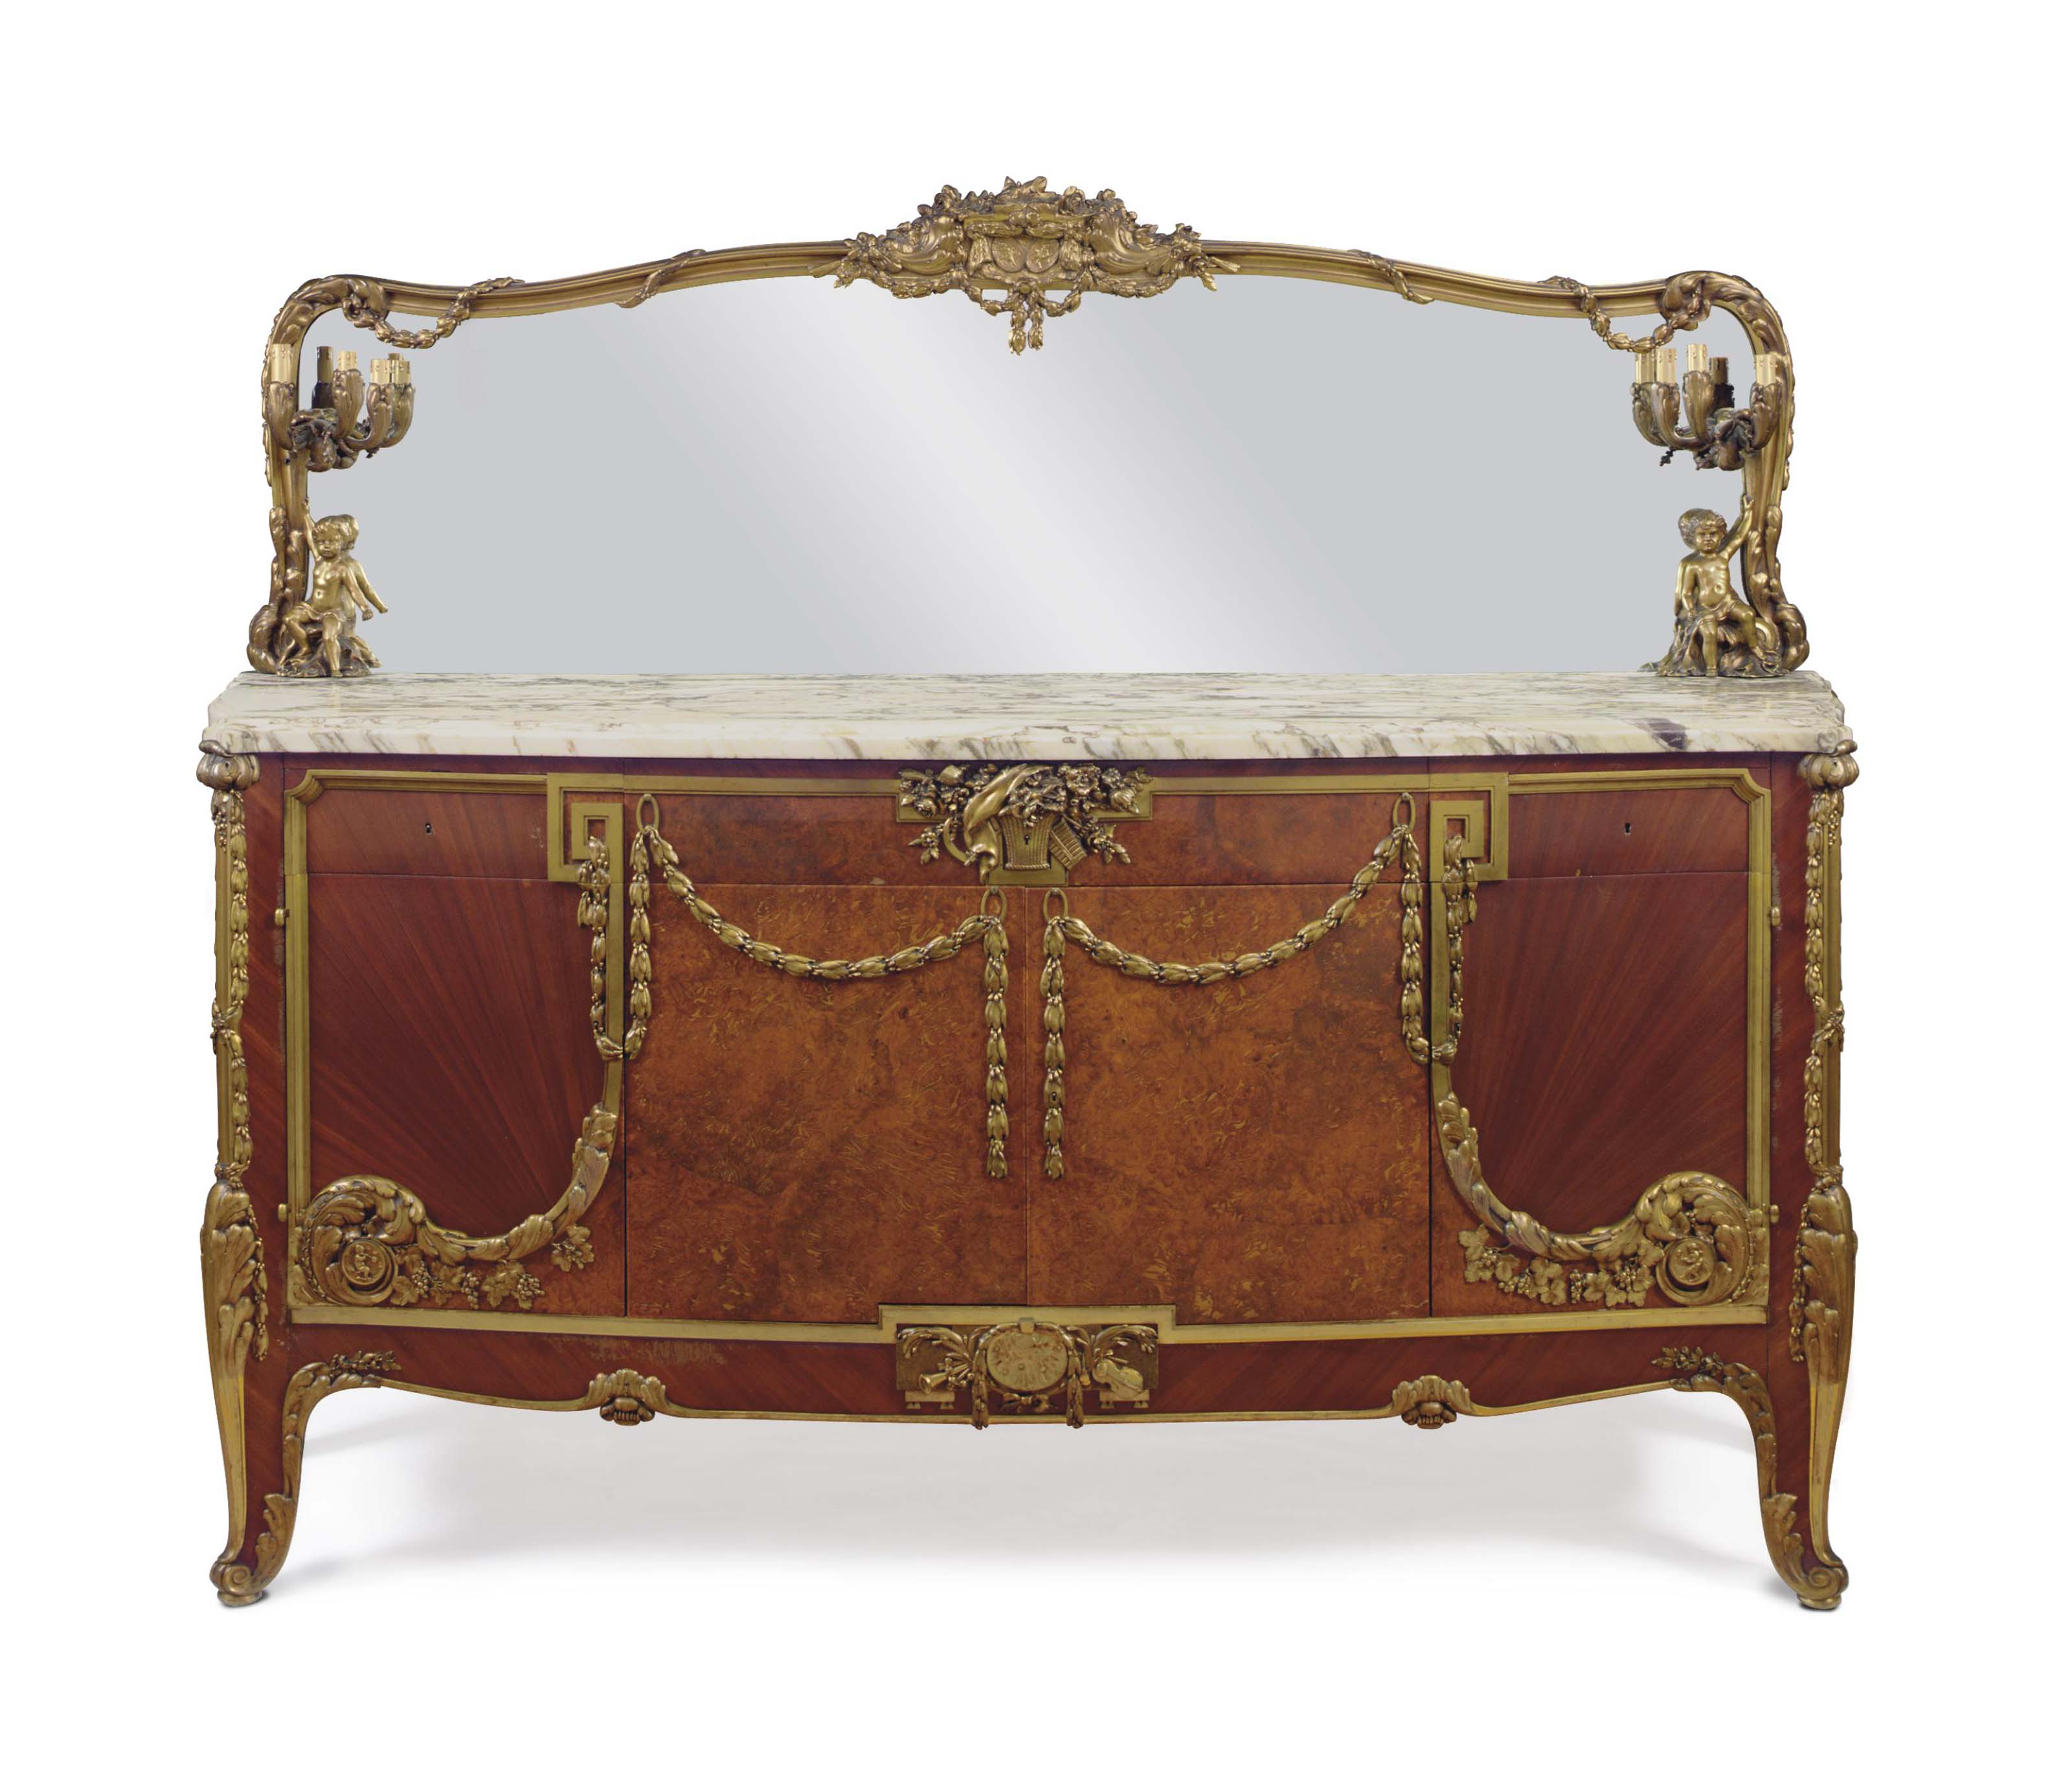 A LARGE FRENCH ORMOLU-MOUNTED SATINE AND AMBOYNA BUFFET AND MIRROR